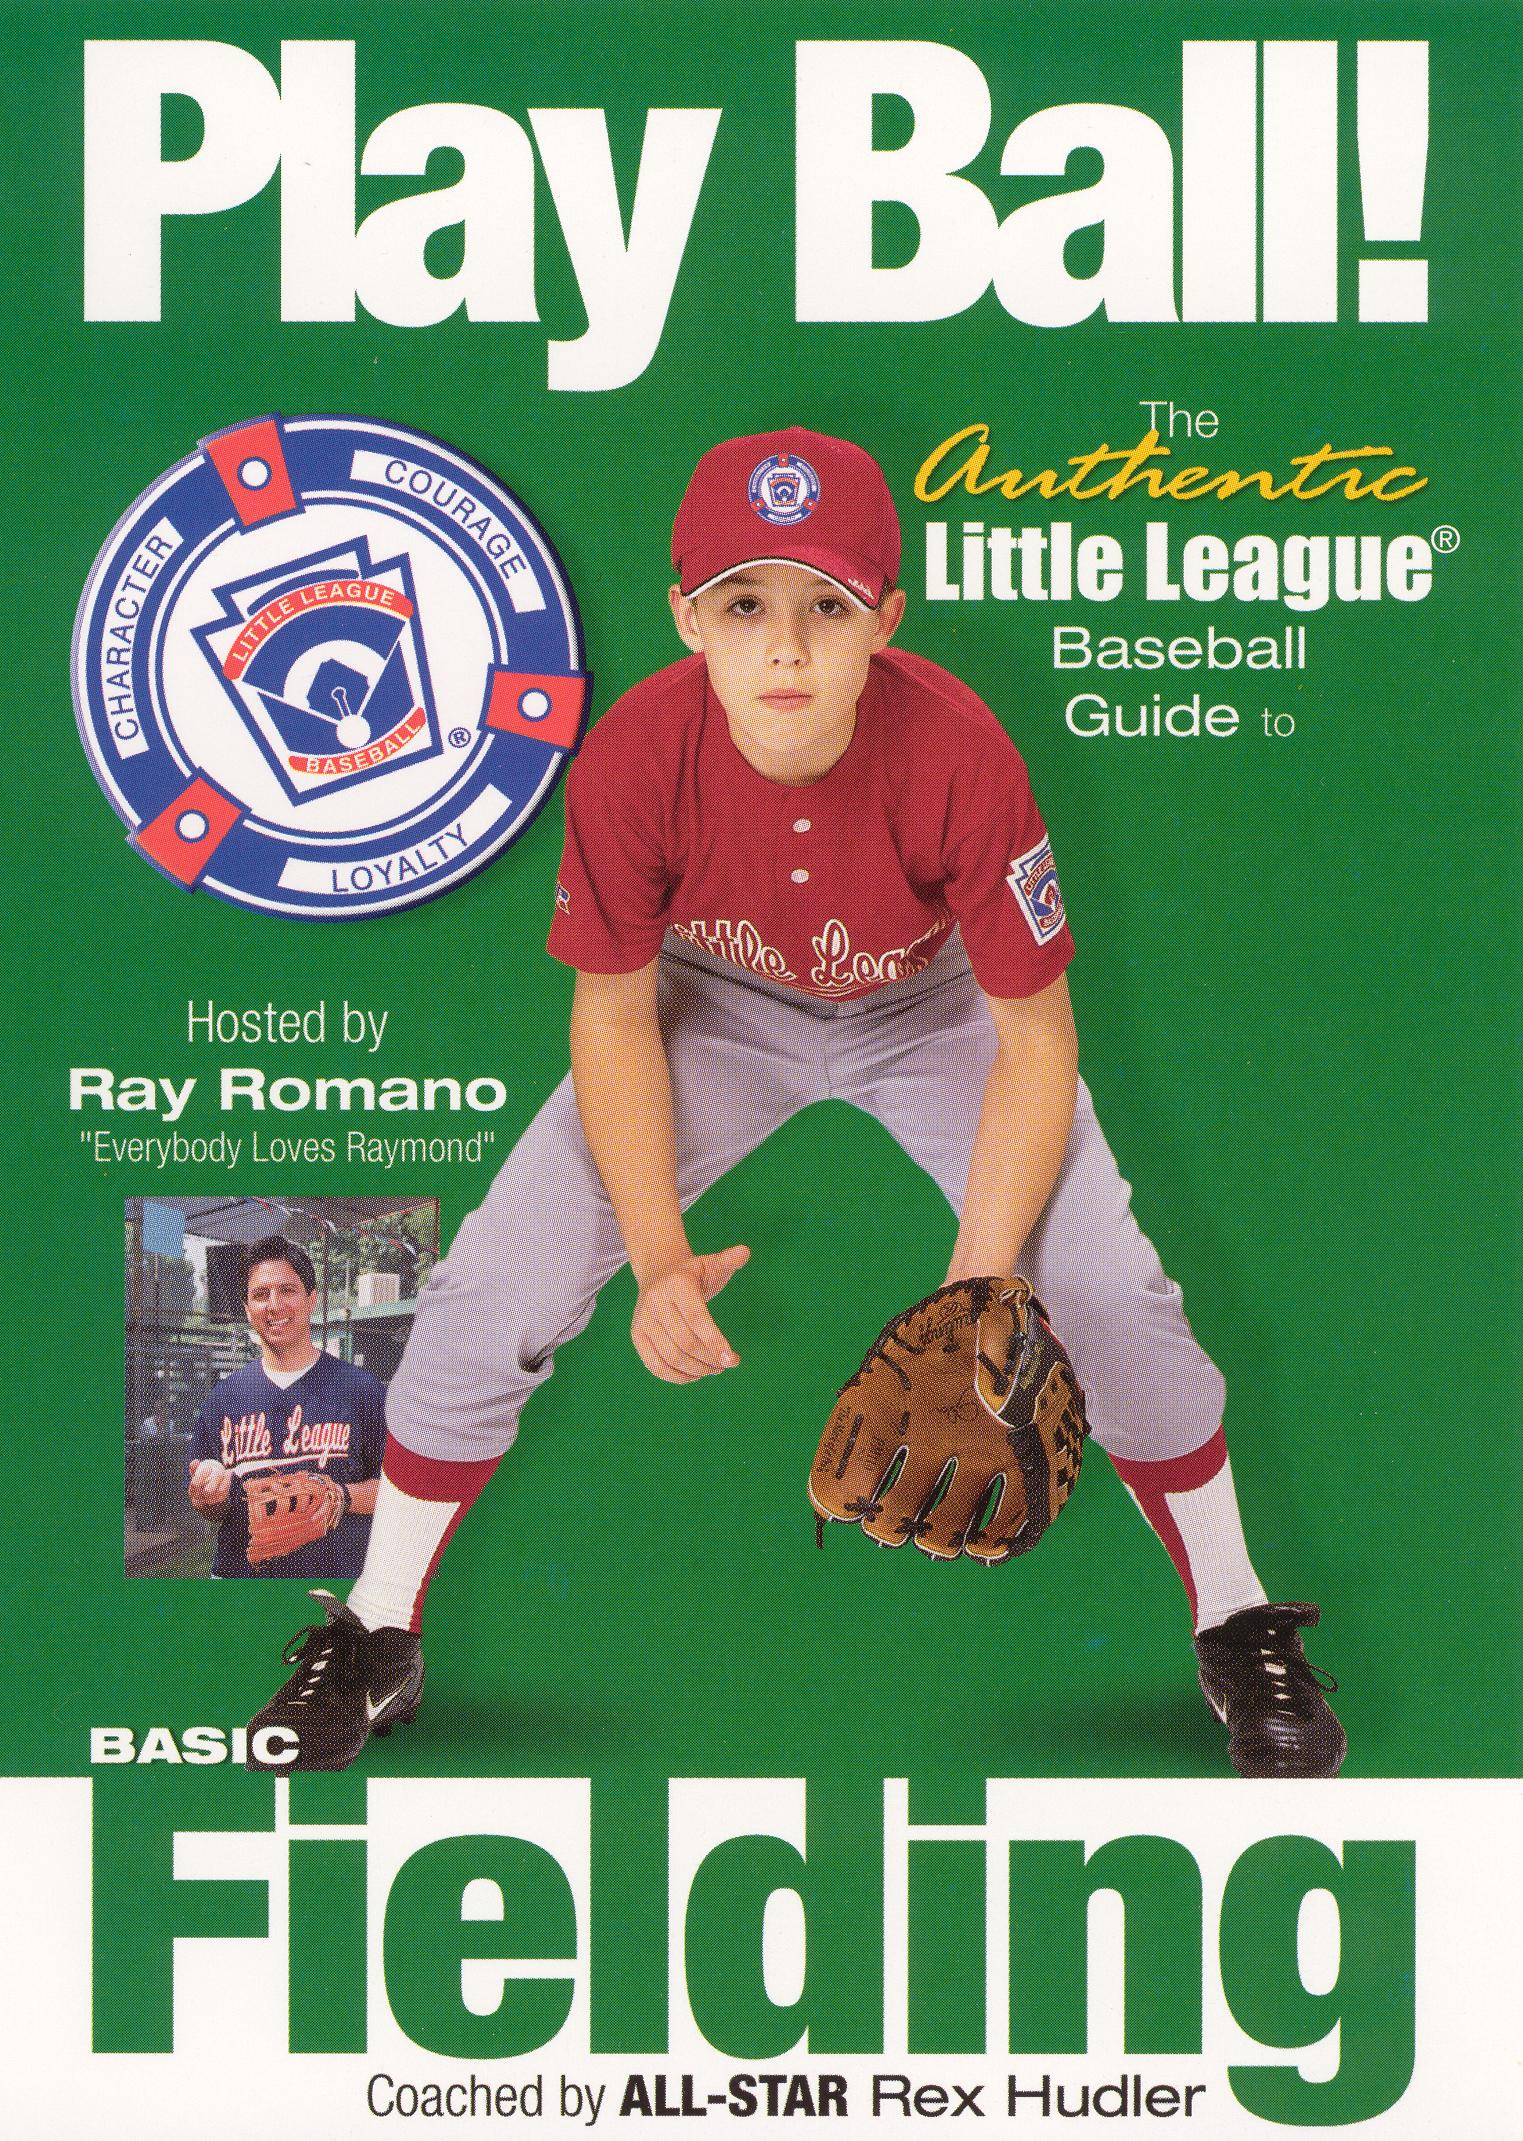 Play Ball! The Authentic Little League Baseball Guide - Basic Fielding